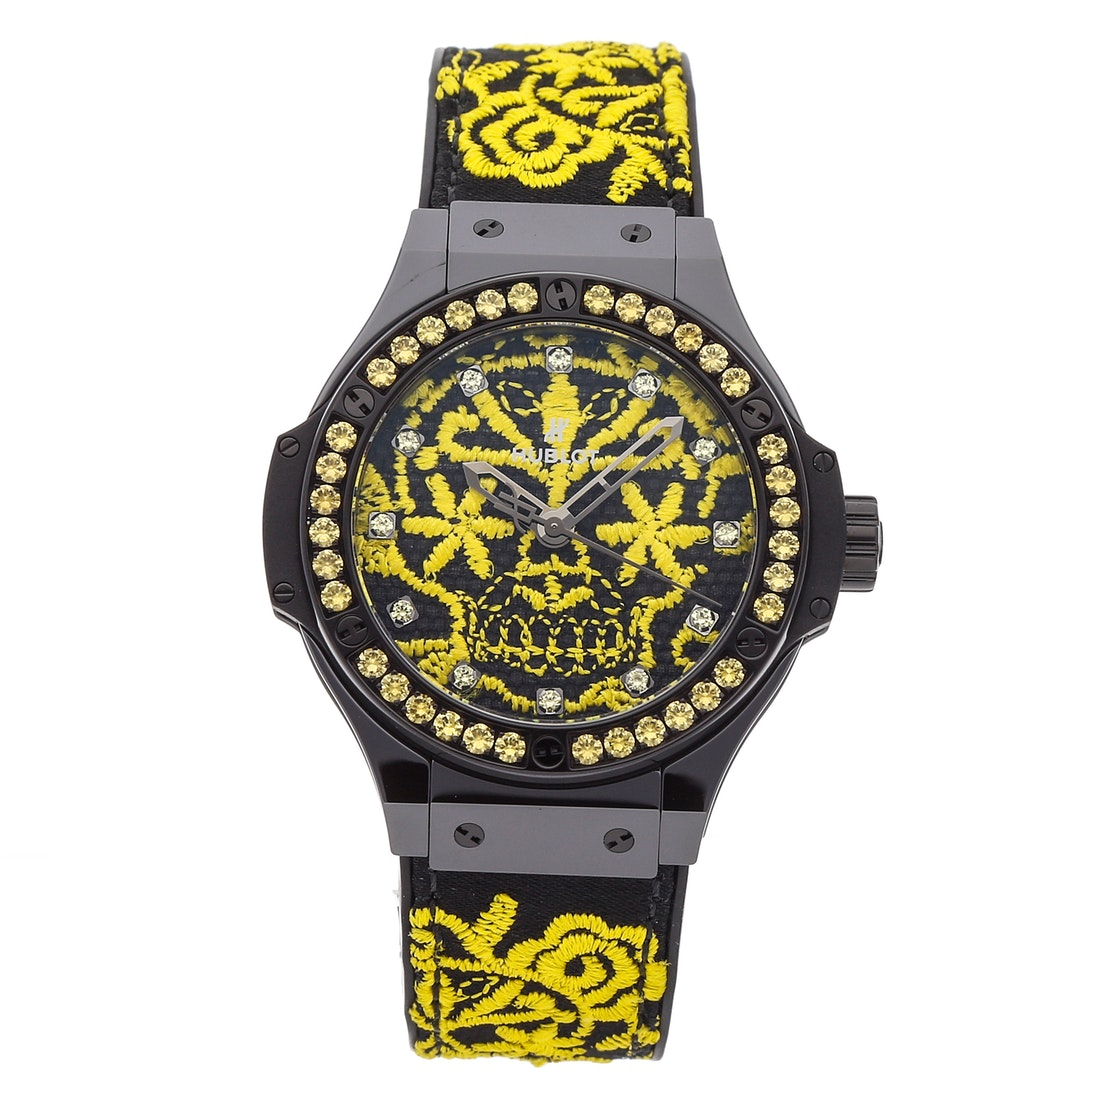 Hublot Big Bang Broderie Sugar Skull Fluo Sunflower Limited Edition 343.CY.6590.NR.1211